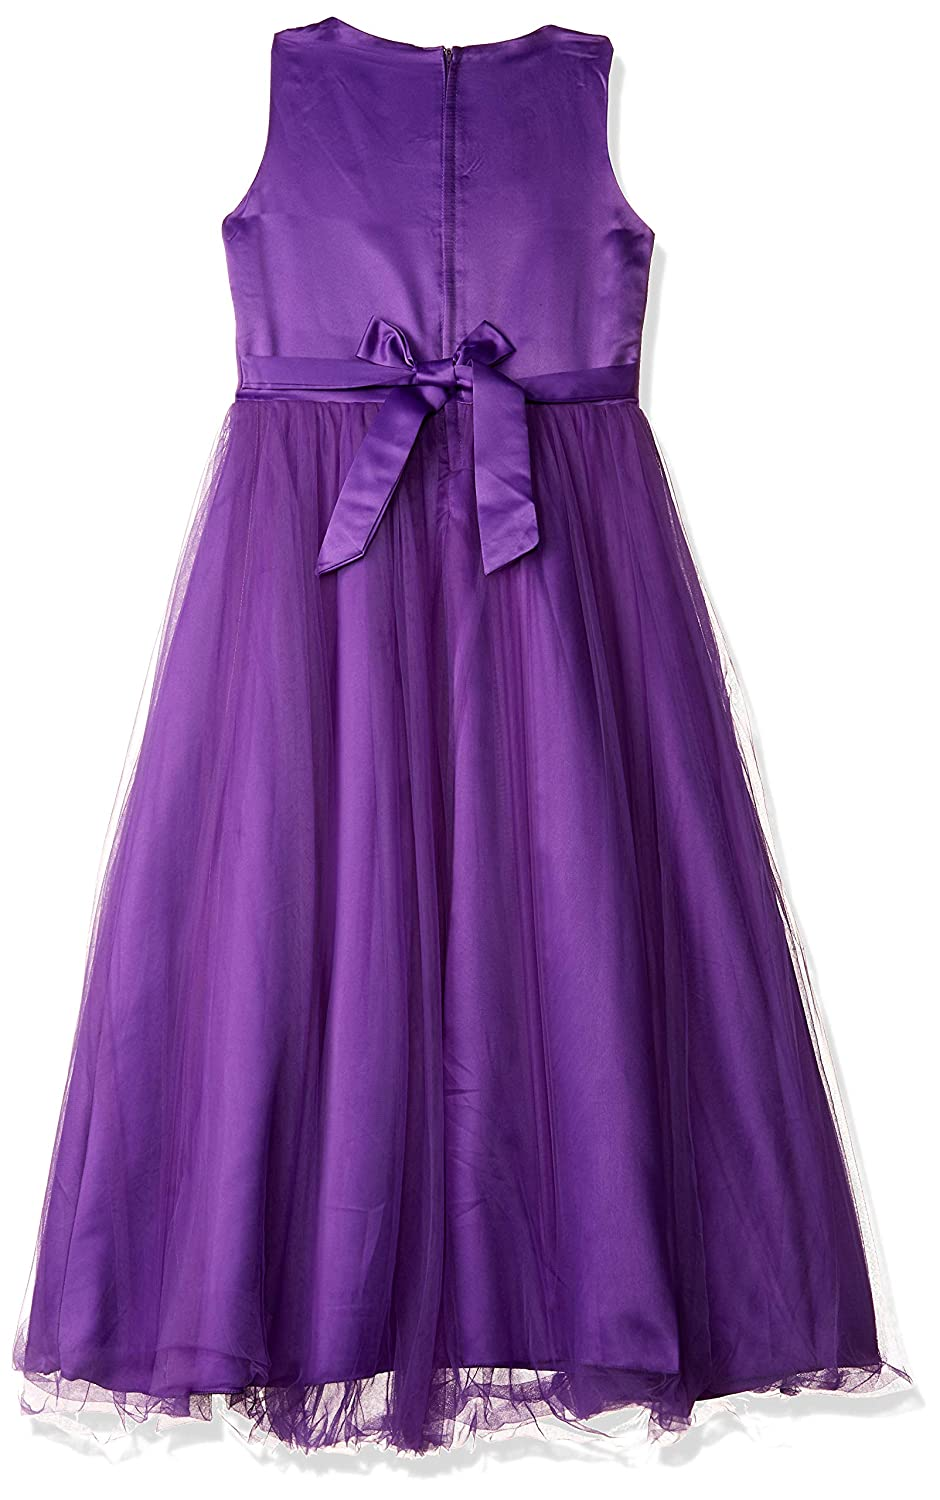 f47ea365841b87 Si Rosa by Hopscotch Girls Poly Cotton Applique Sleeveless Gown in Violet  Colour  Amazon.in  Clothing   Accessories